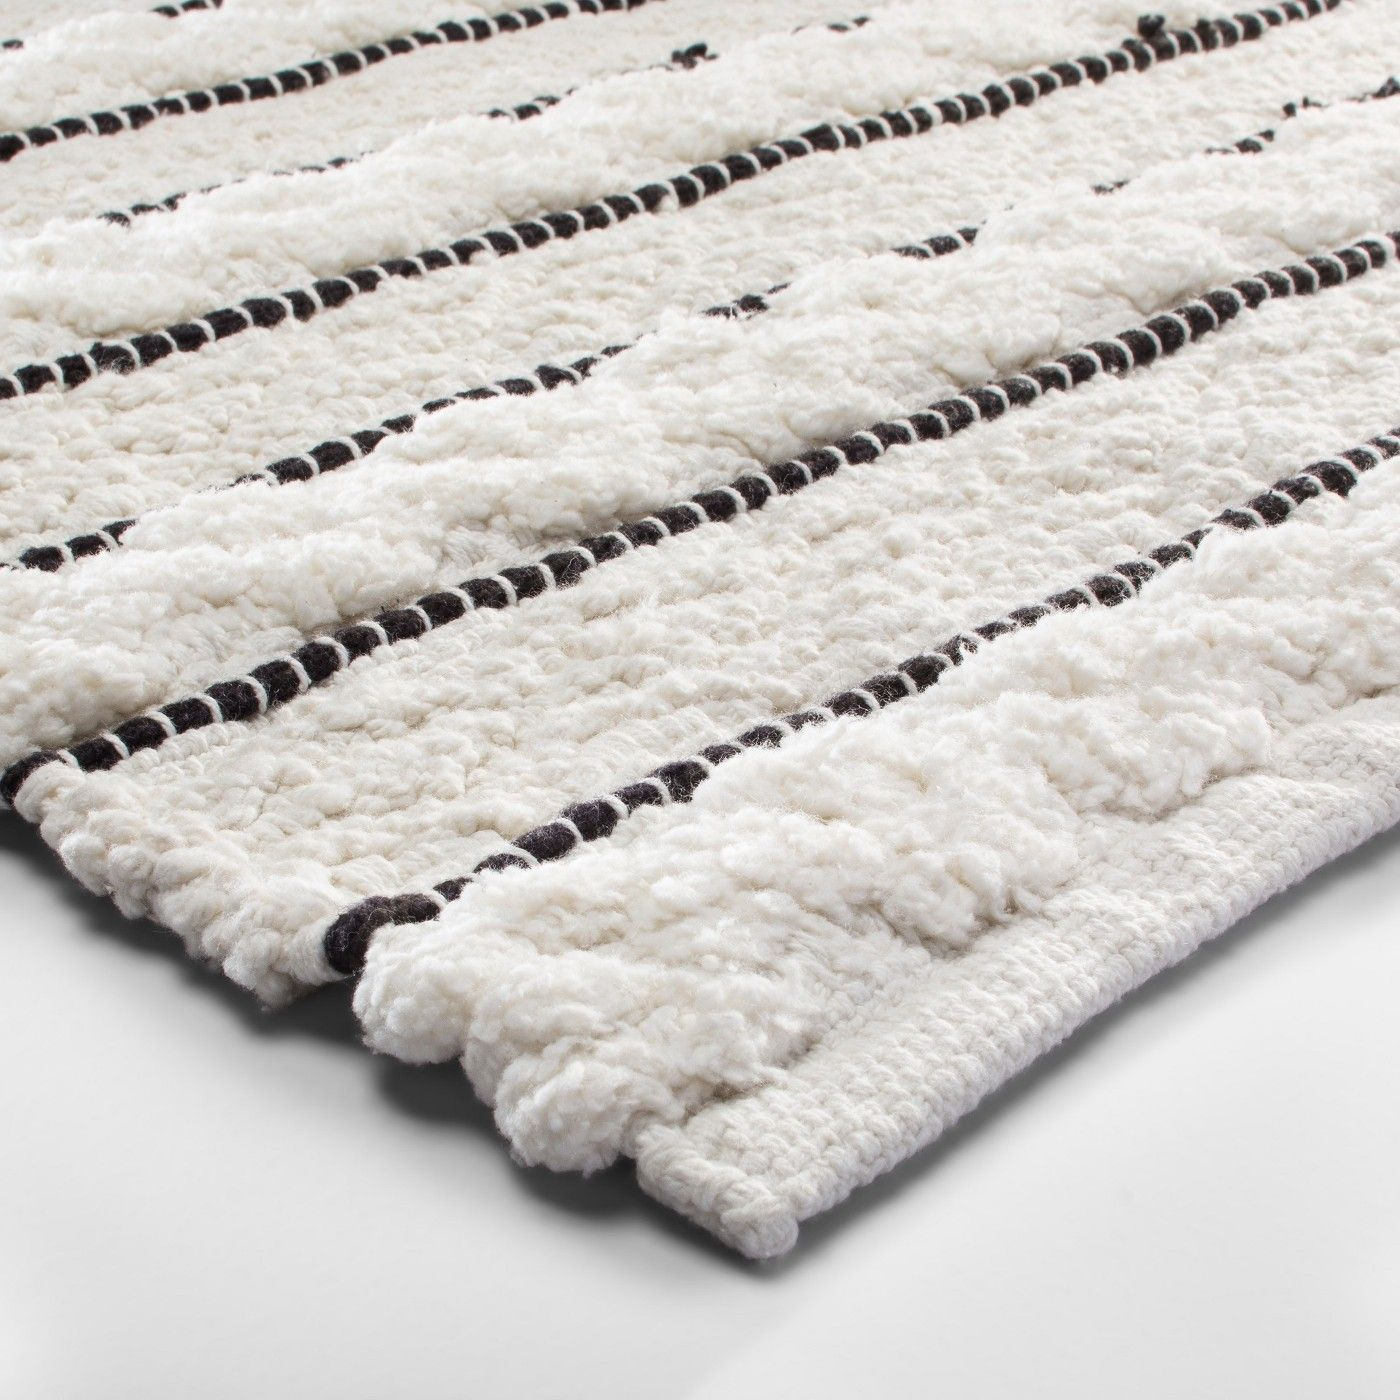 Striped Bath Rug White Black Opalhouse With Images White